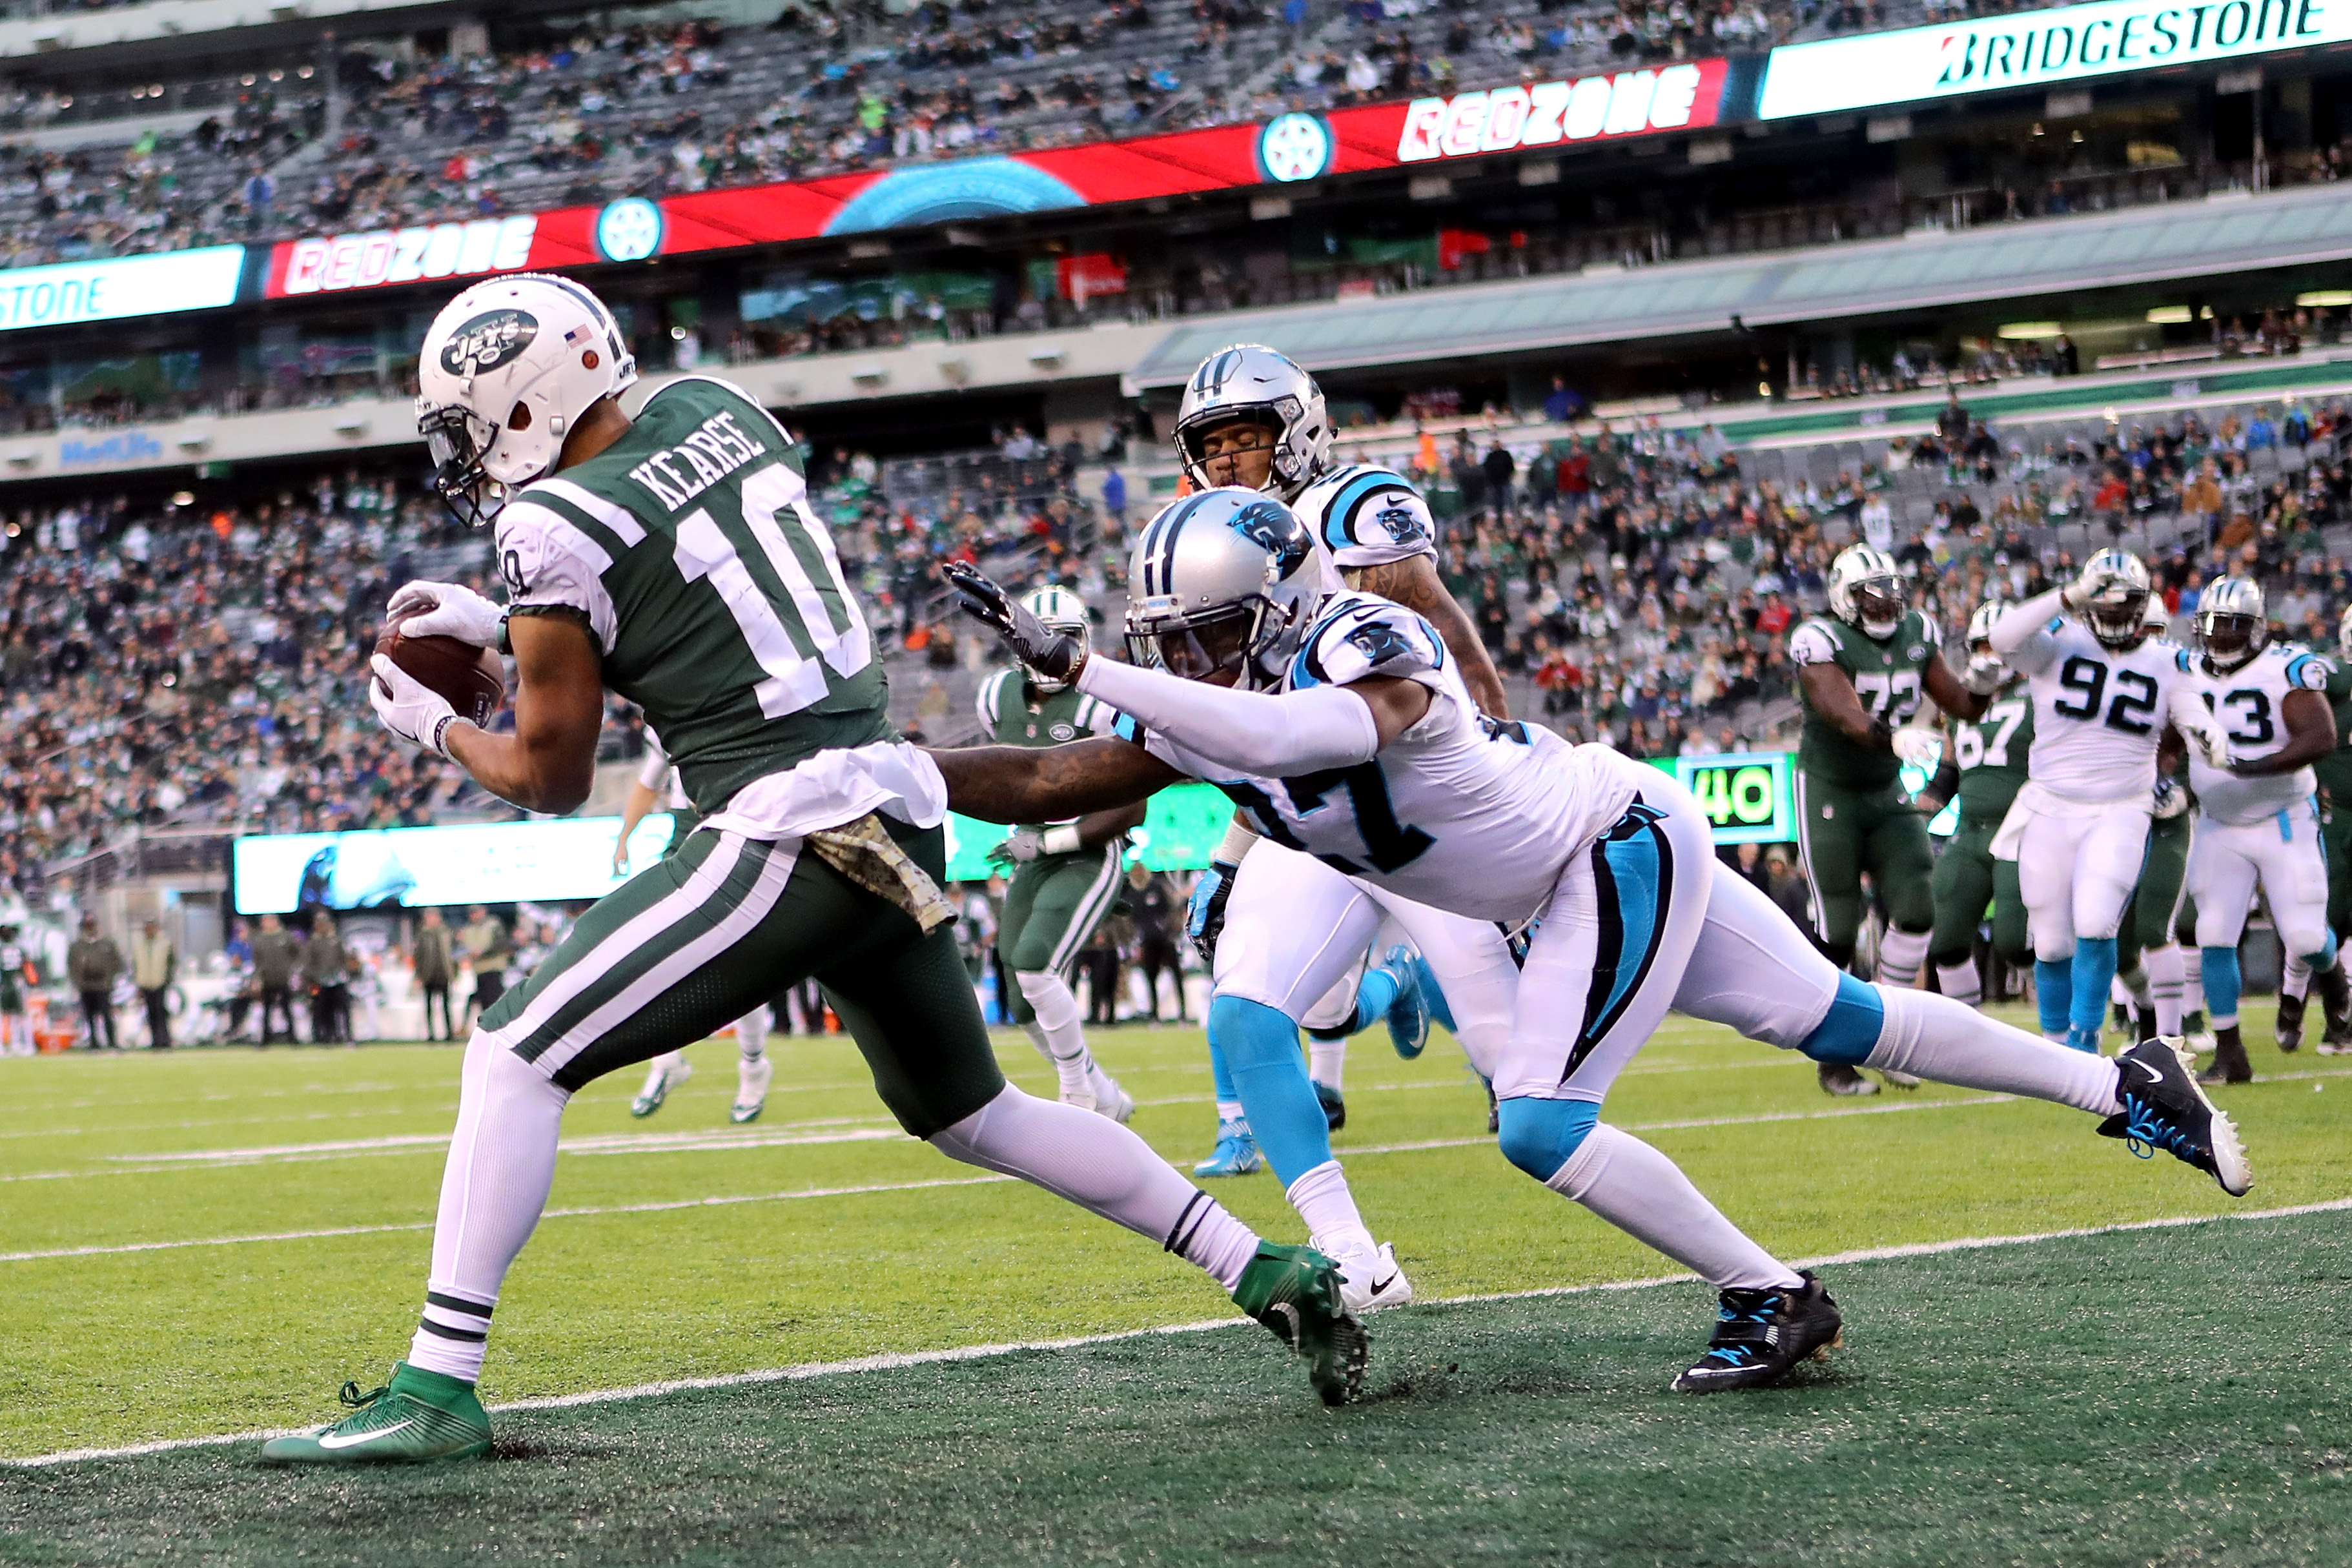 Panthers Top Jets Thanks to Two Late Scores